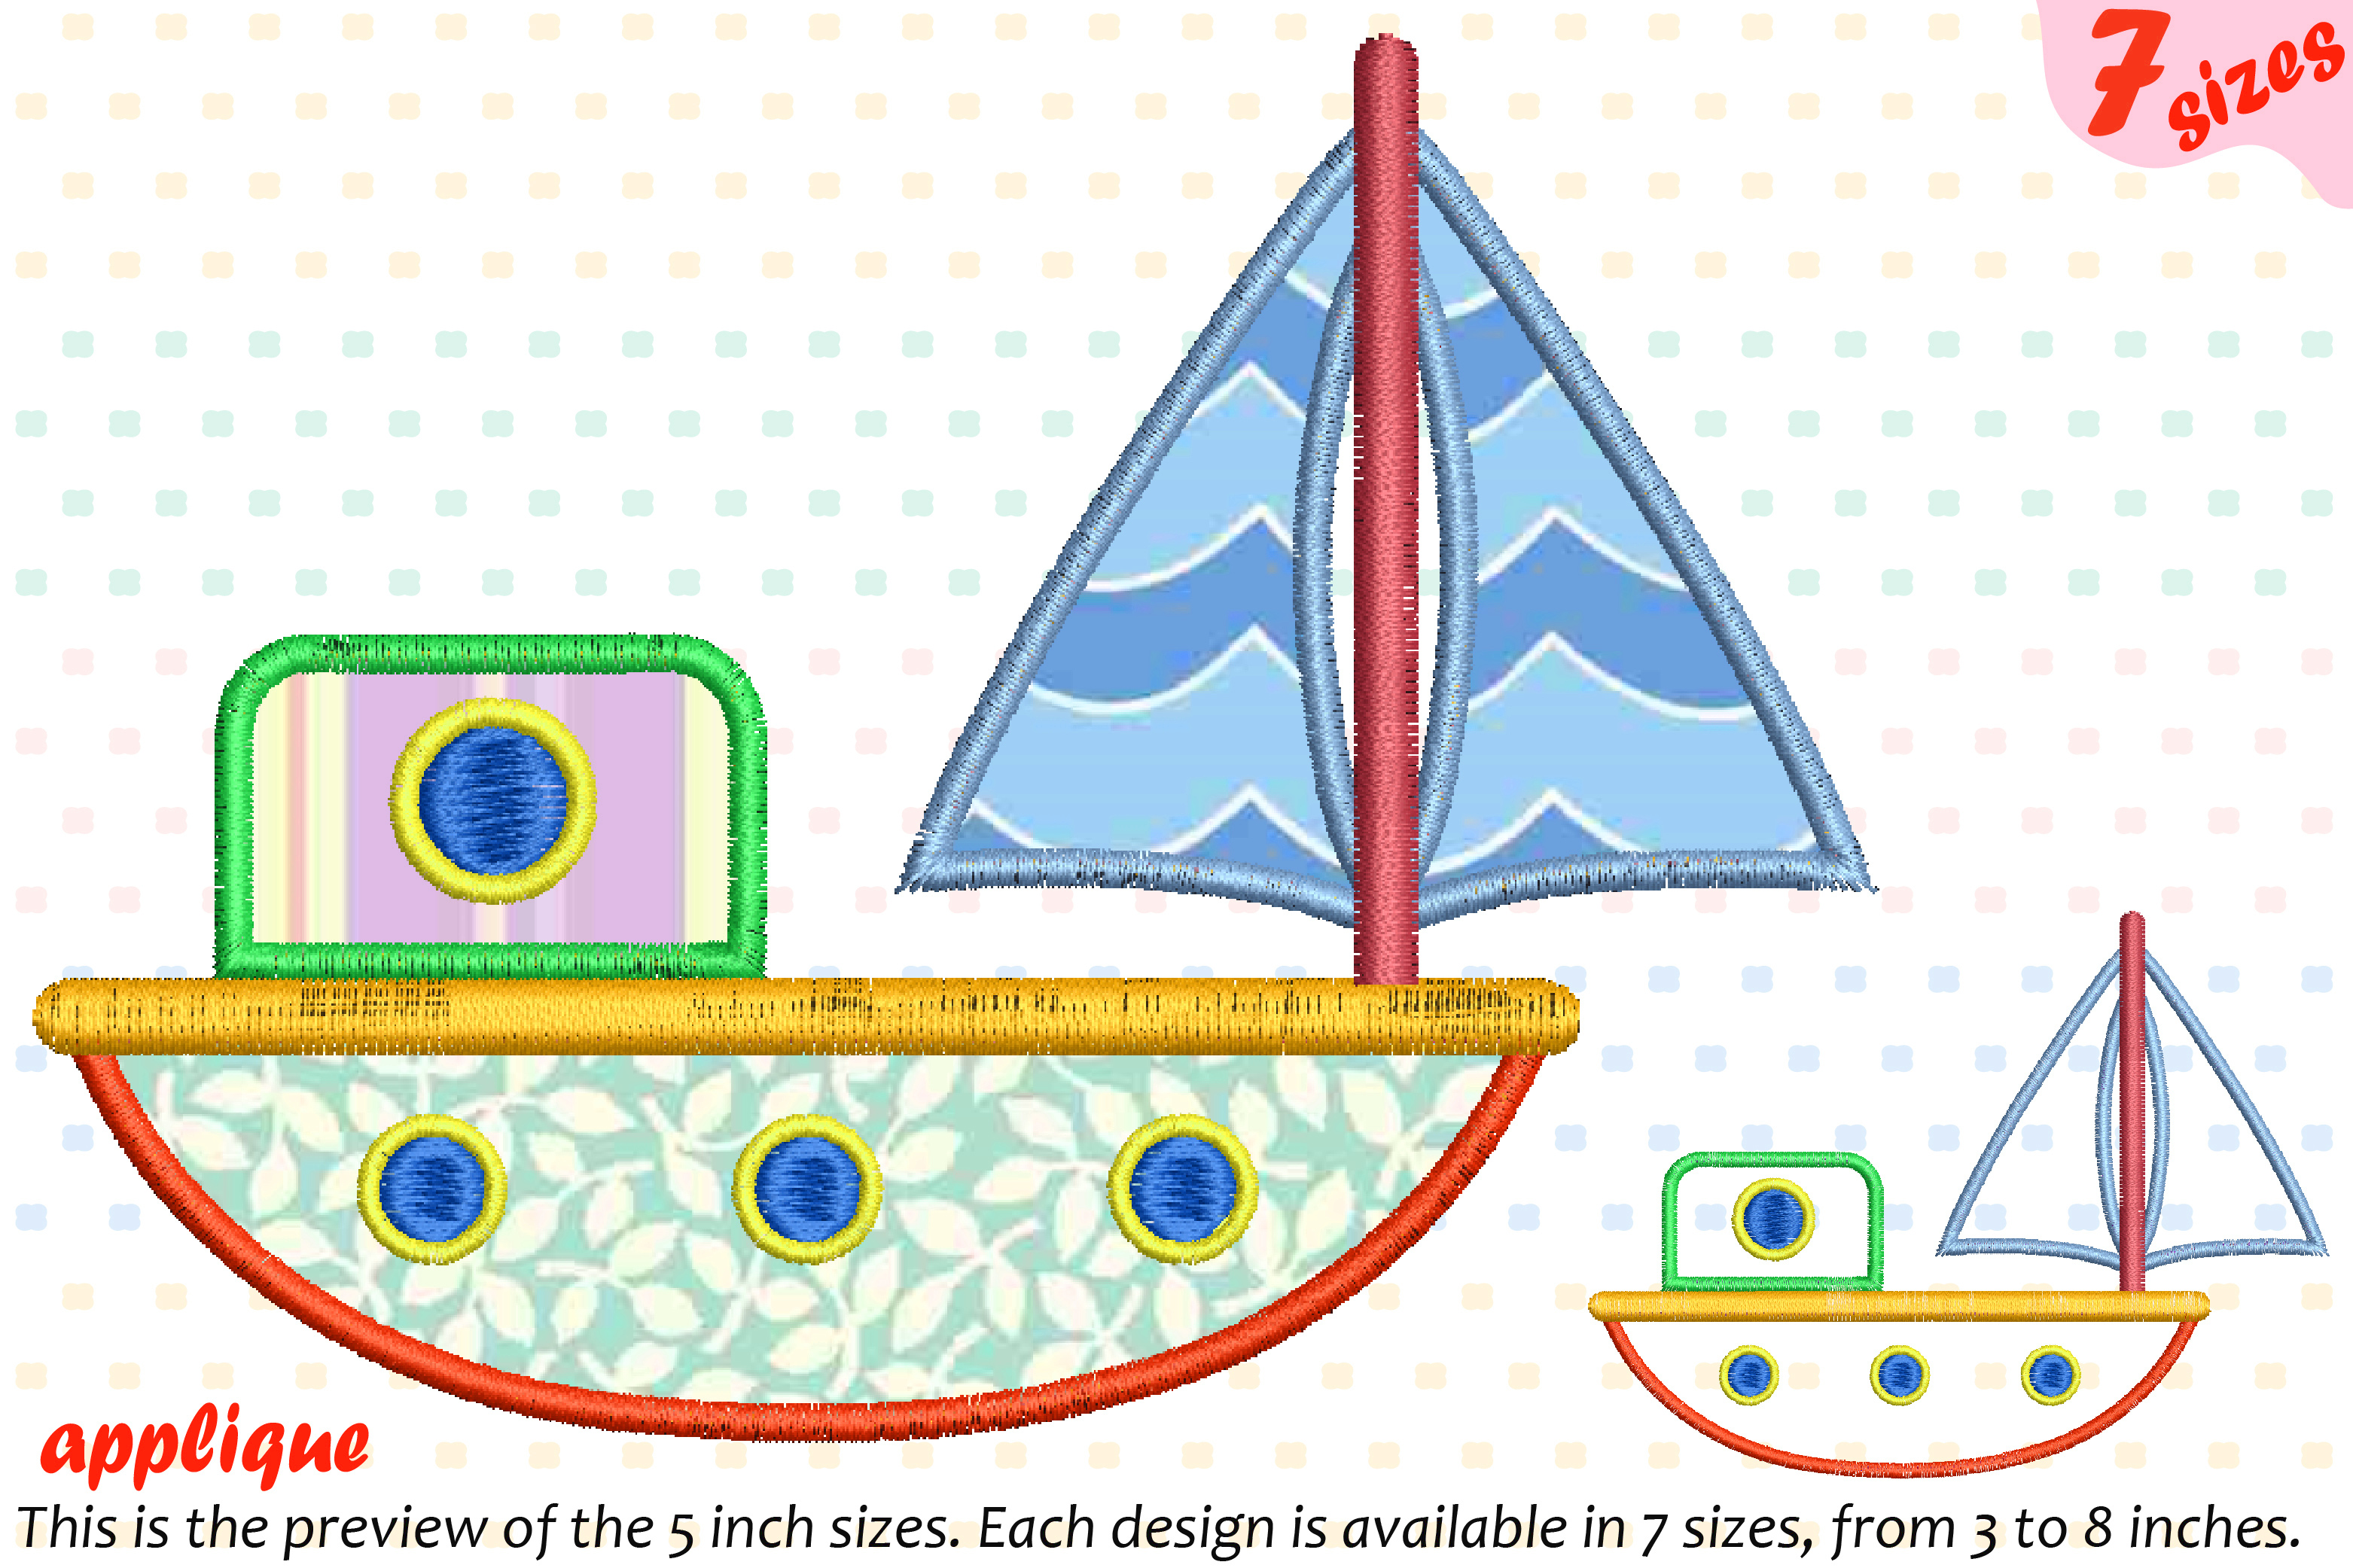 Sailboat Toy Applique Designs for Embroidery Machine Instant Download Commercial Use symbol outline cartoon boat toys yacht ship 19a example image 1